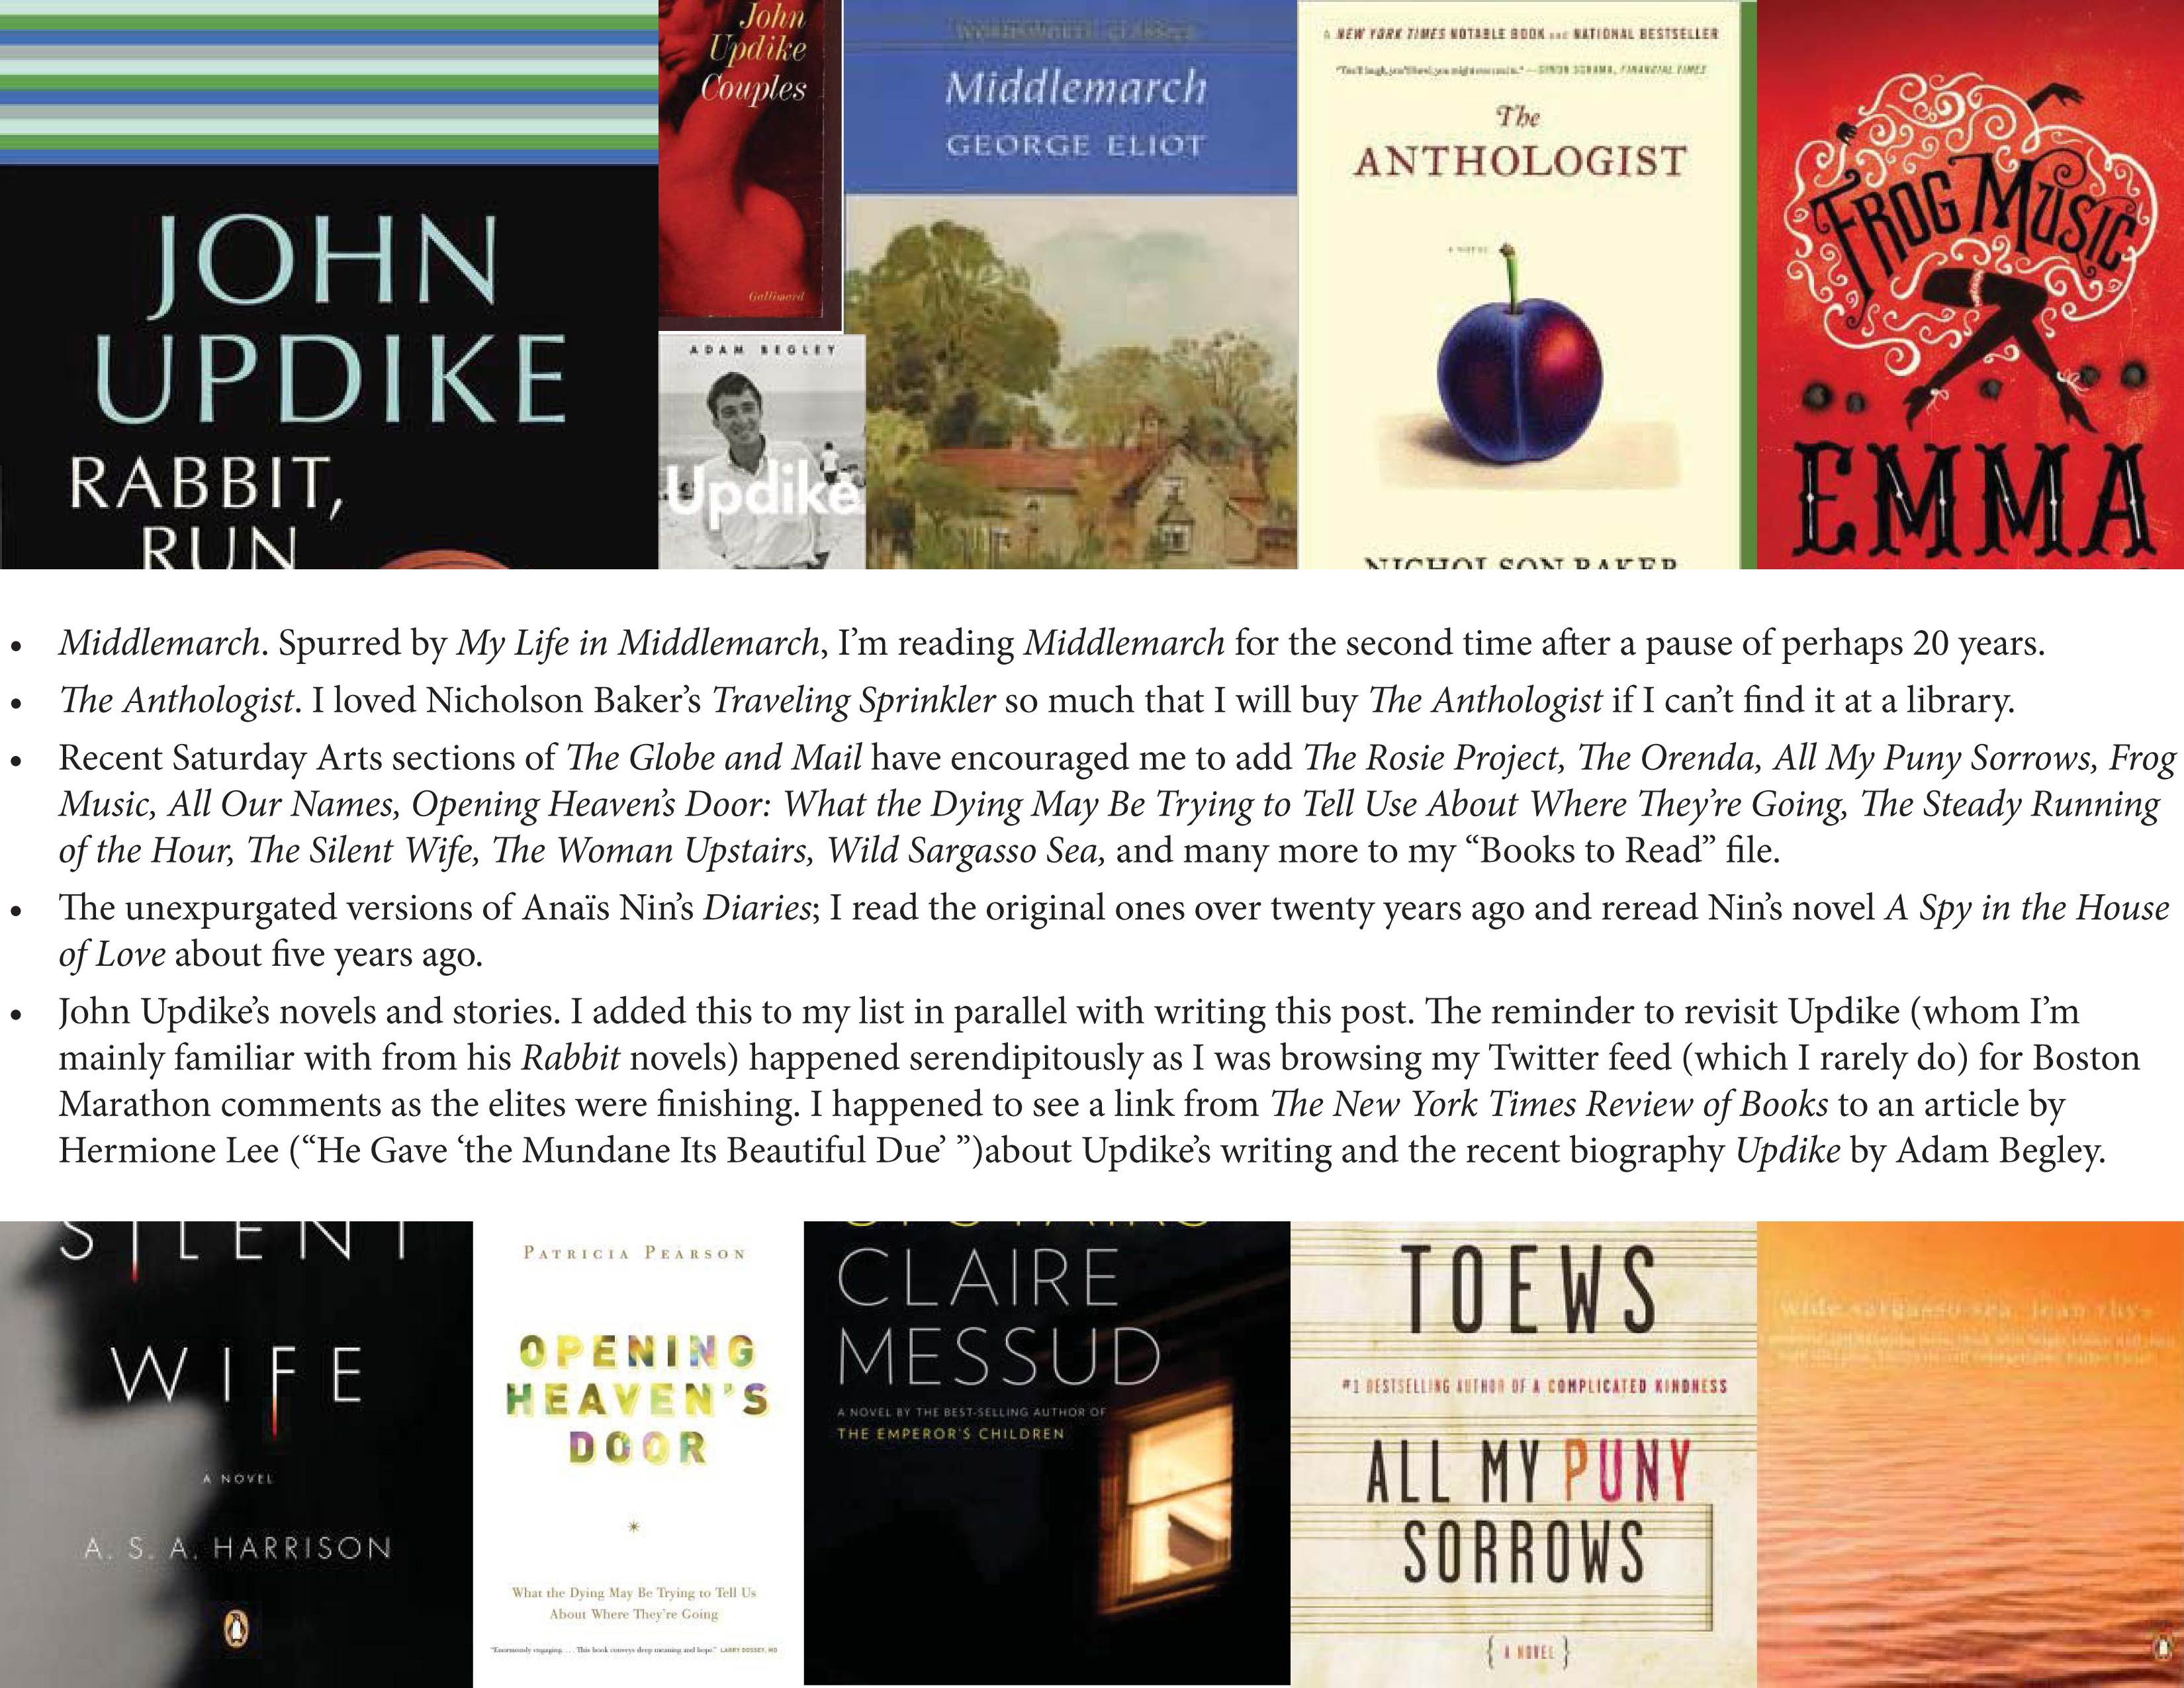 whats a good essay That way they will know why they are receiving these essays resources about biblical theism: a reading of these books will give a very good understanding of the overall subject of biblical theism of course, the best.